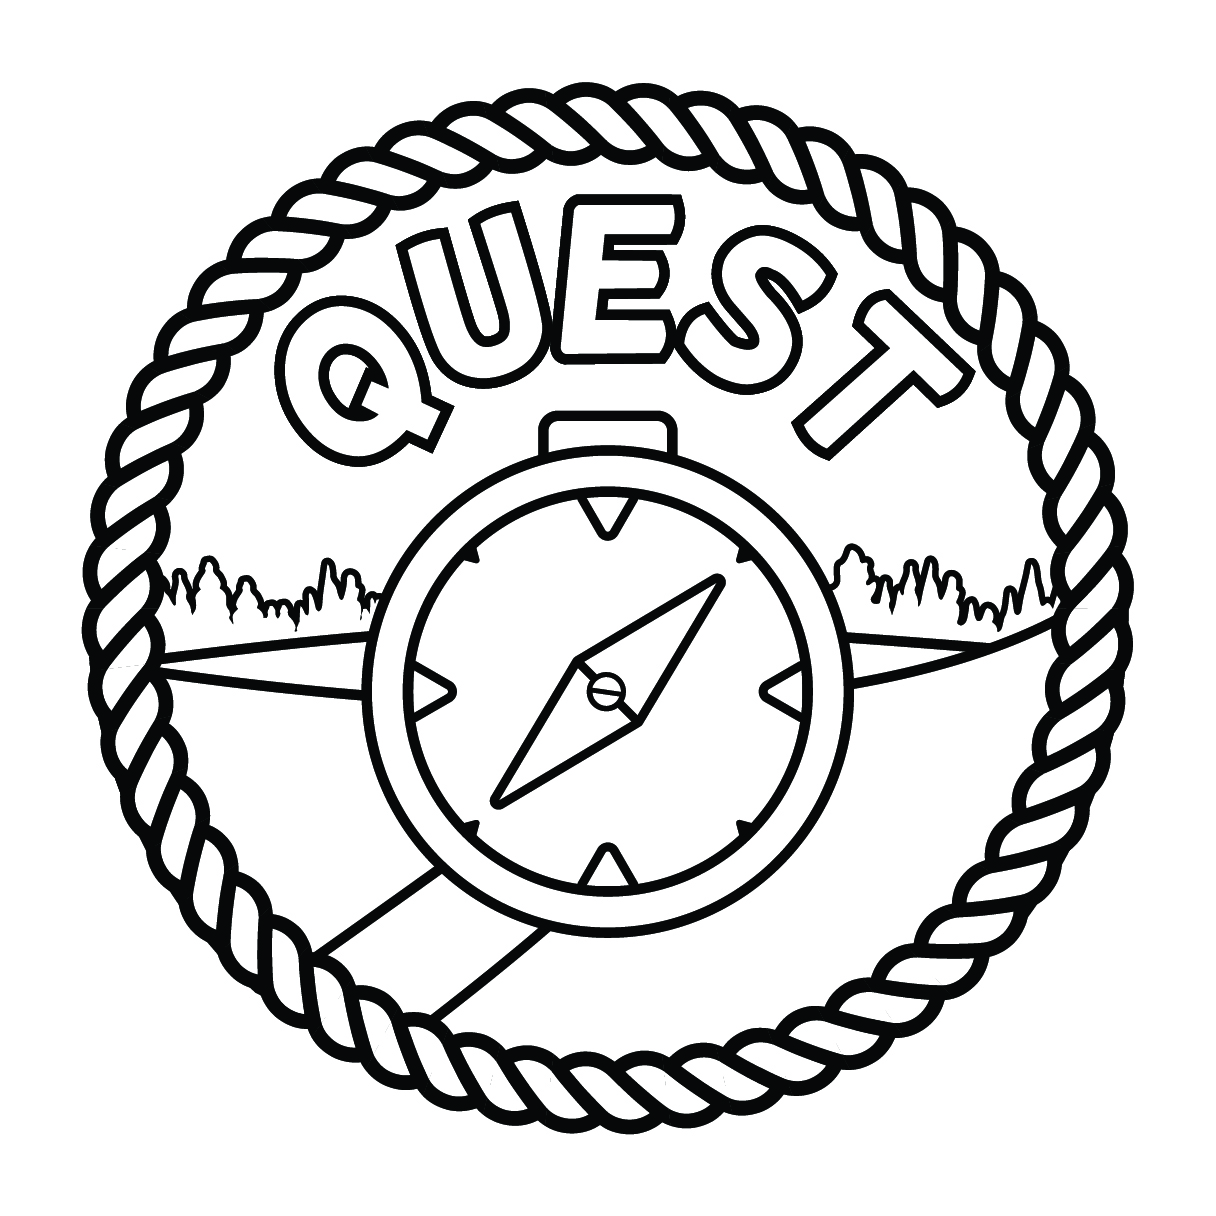 Quest - Logo - Colouring - Thumbnail.jpg